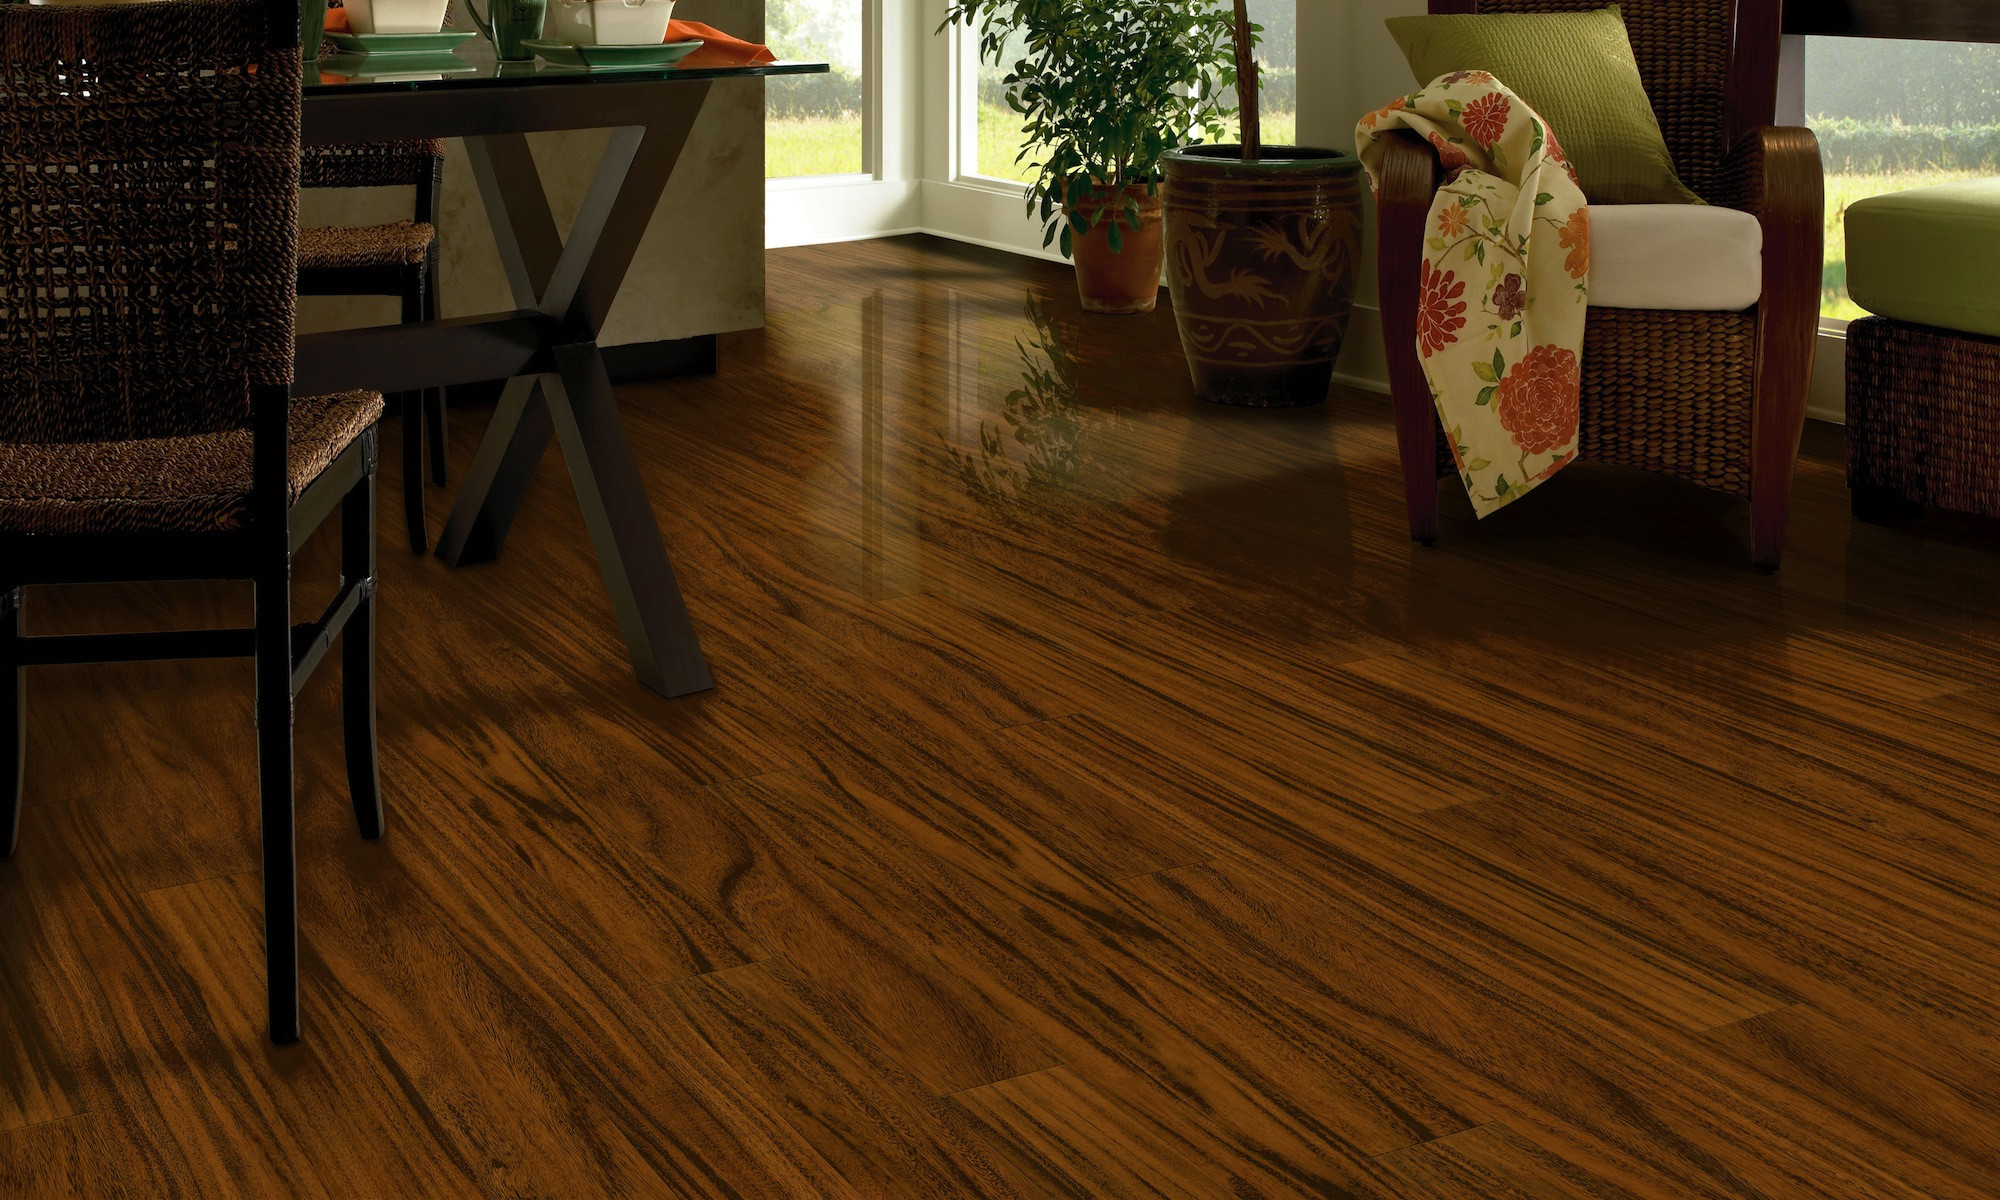 Laminate Floor Cleaning System